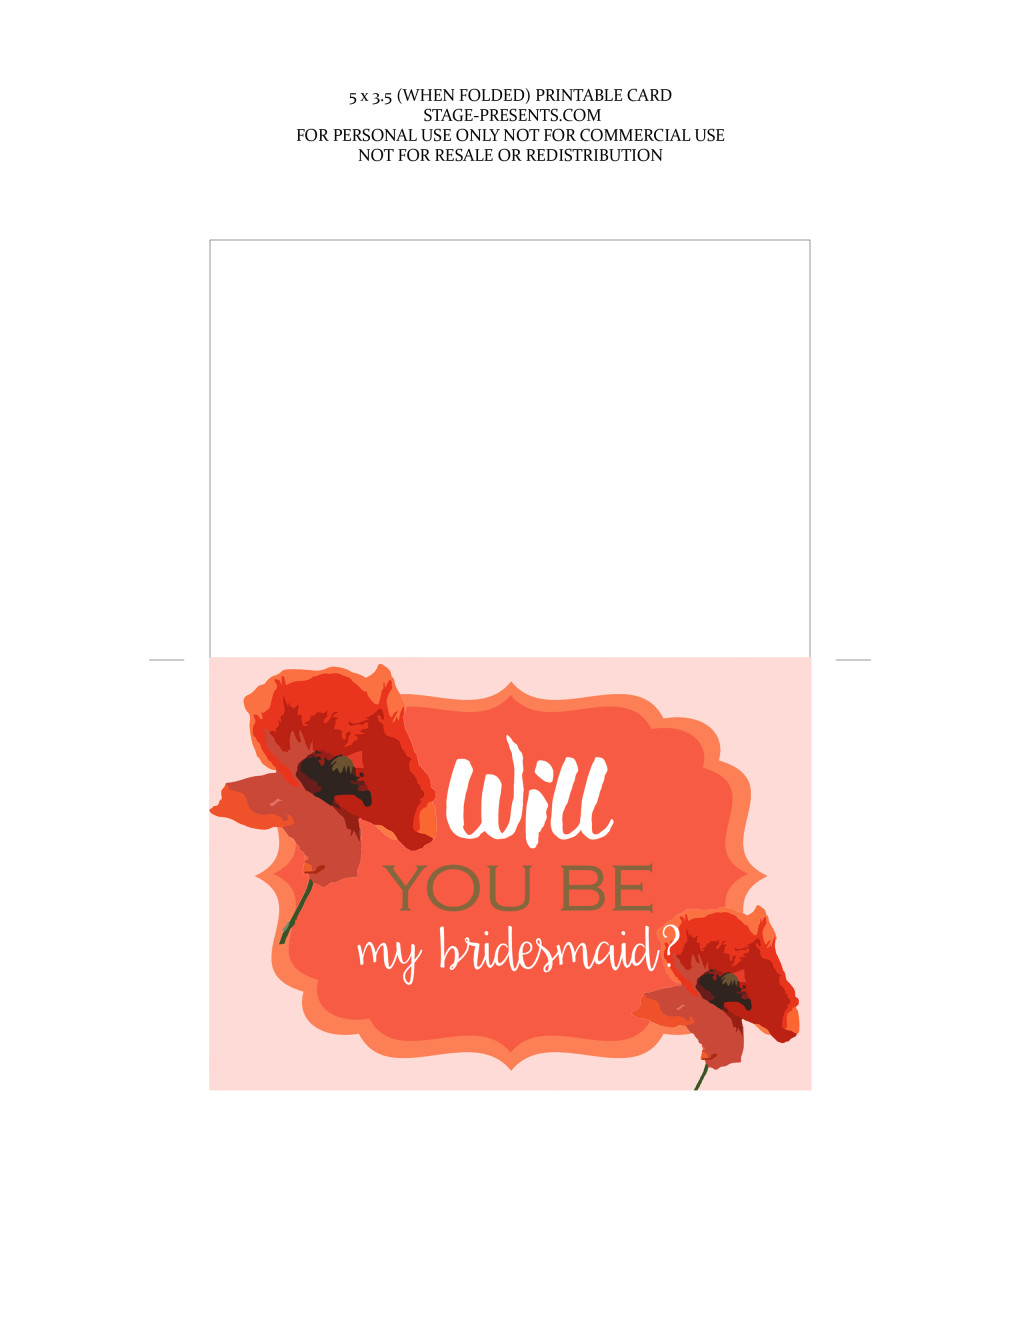 Will You Be My Bridesmaid Printable Card ©2016 Stage Presents